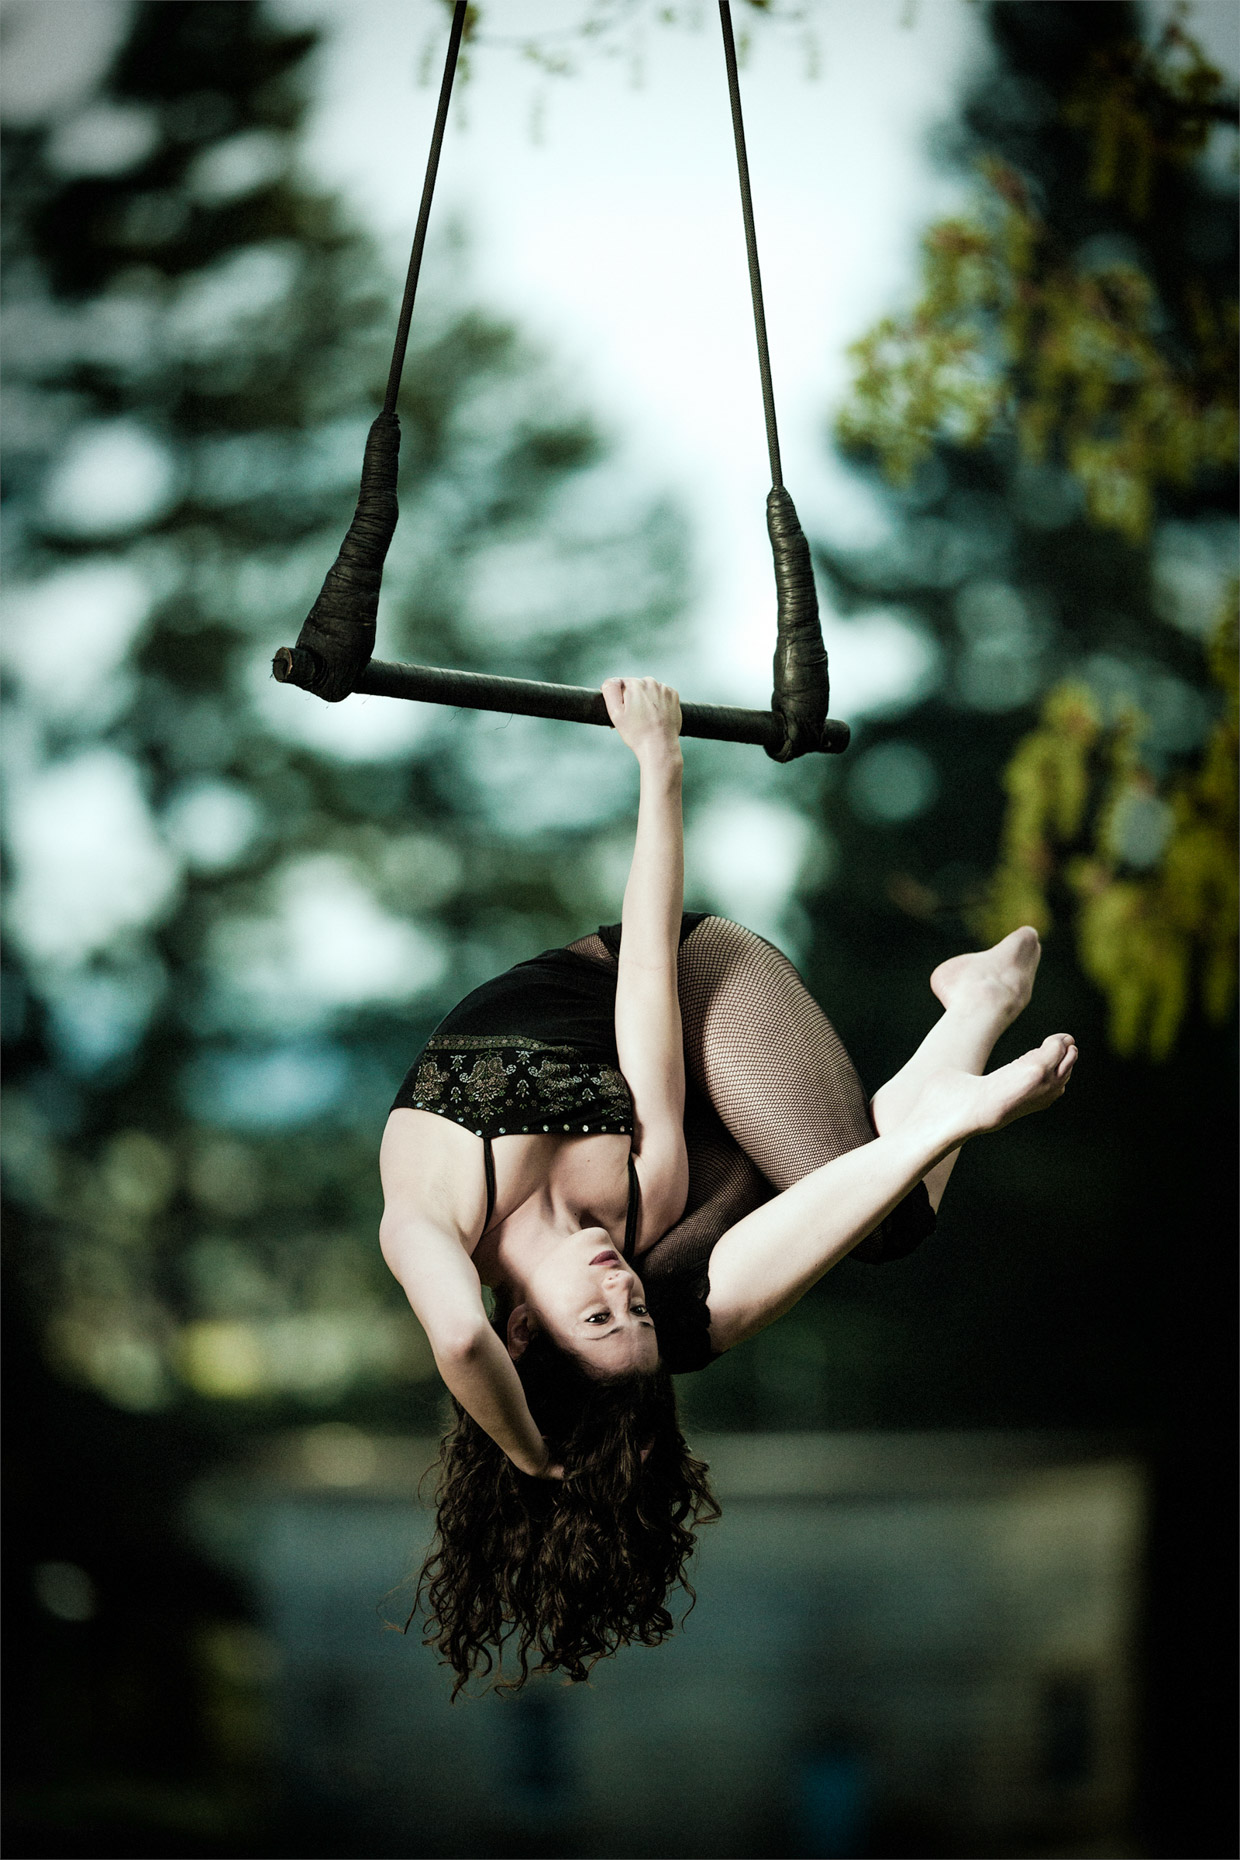 Trapeze performer Sy Parrish